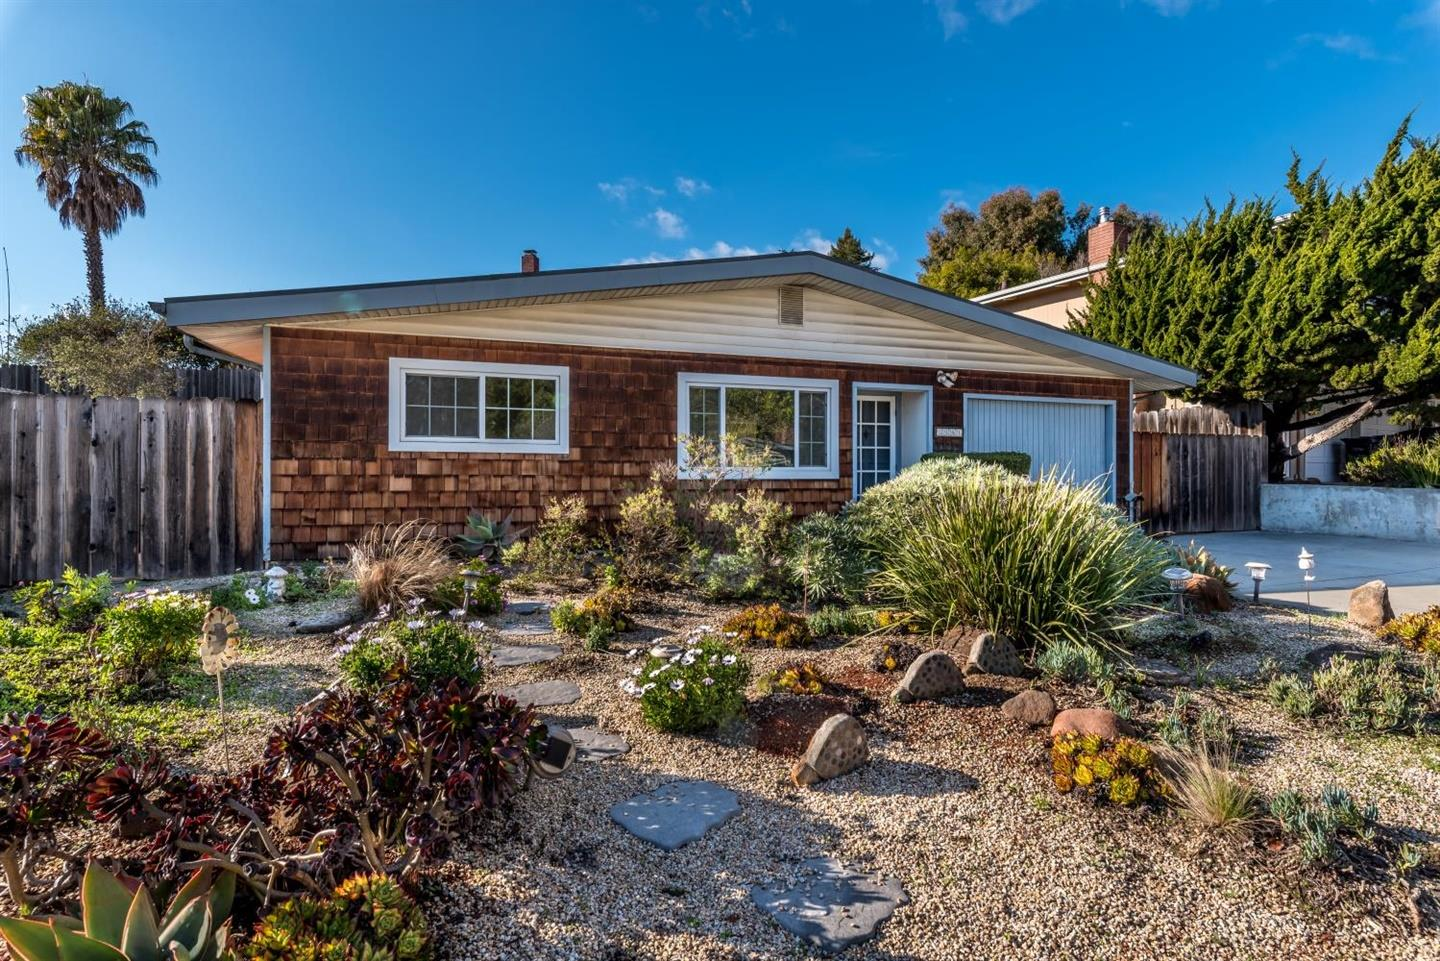 Great starter home or beach getaway: 3 bedrooms, 11/2 baths. located in close proximity to the charming villages of Capitola, Soquel and New Brighton Beach. Easy freeway access. Close to Cabrillo College. Desirable schools: Soquel Union Elementary and Santa Cruz High.